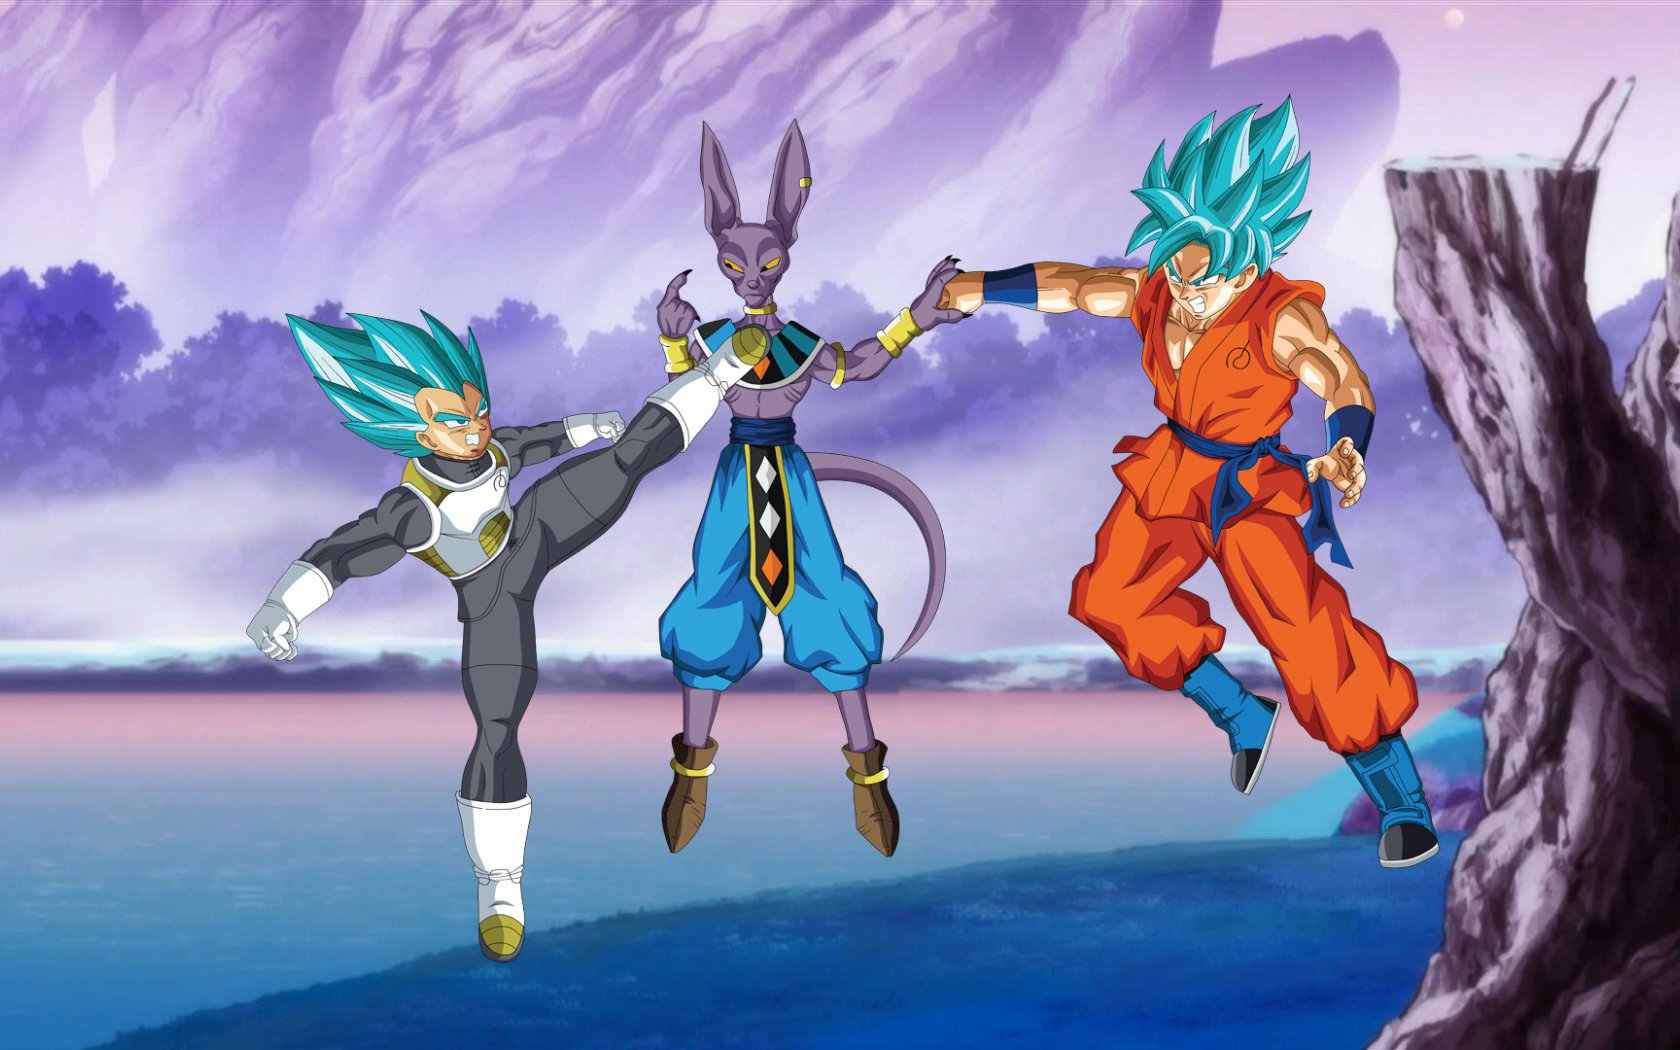 Free Download Vegeta And Goku Ssgss Vs Lord Beerus Wallpaper By